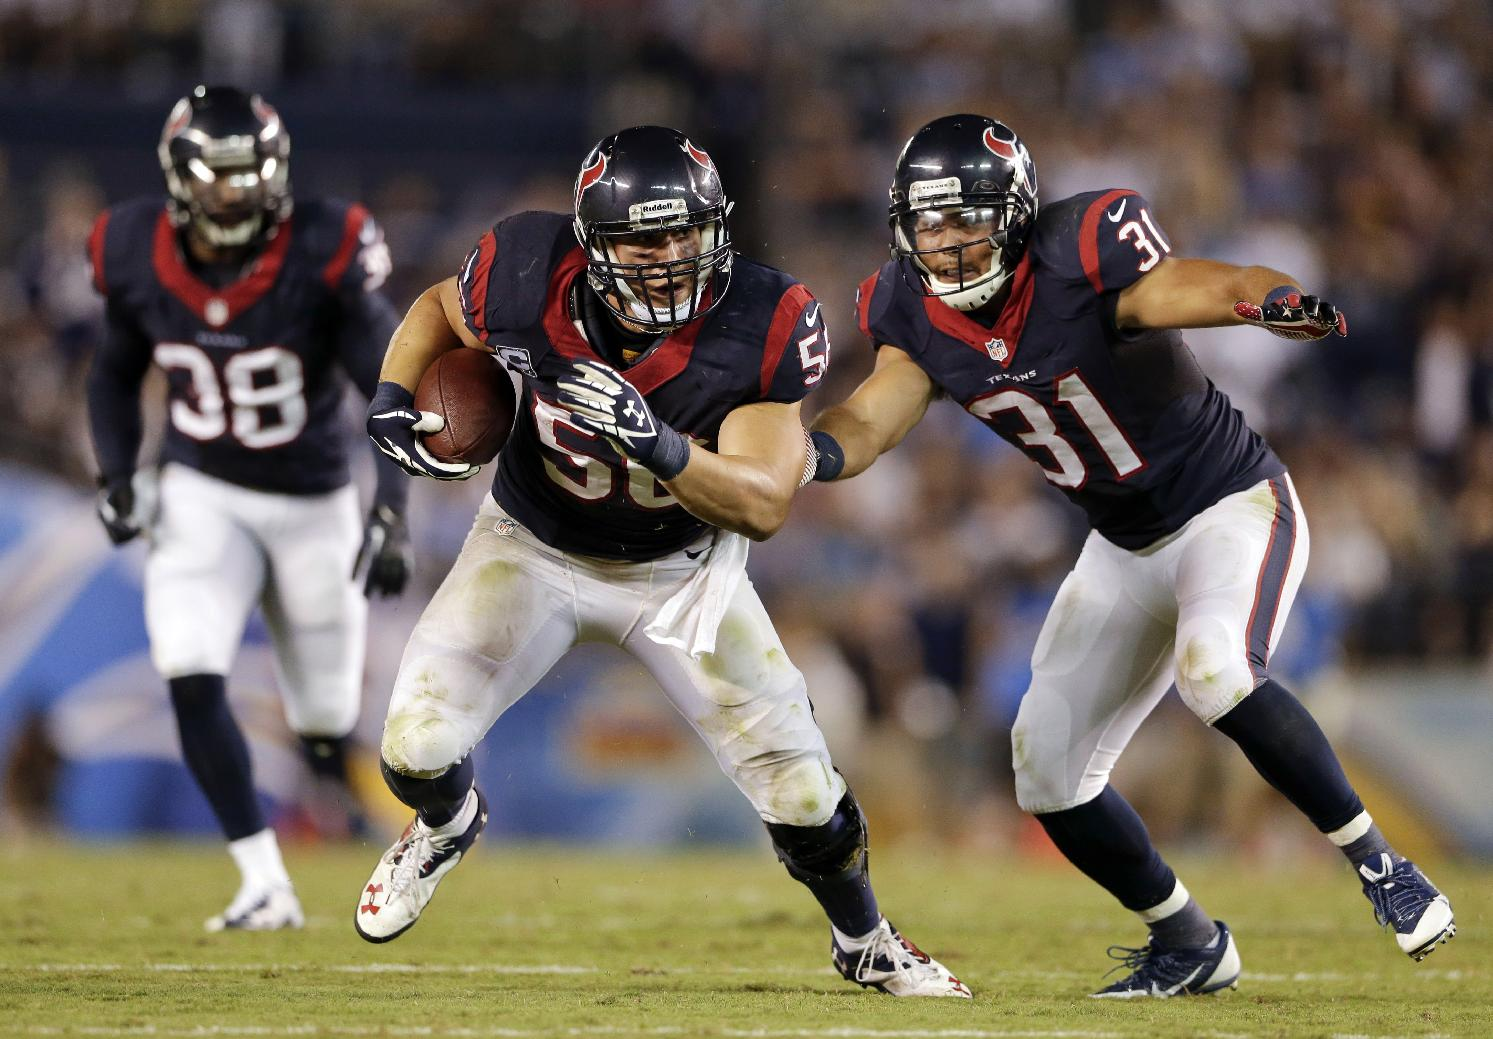 FILE- In this Sept. 9, 2013, file photo, Houston Texans inside linebacker Brian Cushing, center, returns an interception for a touchdown during the second half of an NFL football game against the San Diego Chargers in San Diego. Cushing didn't need long to show he was back after season-ending knee surgery. The linebacker returned an interception for a touchdown, rallying the Texans in their opener